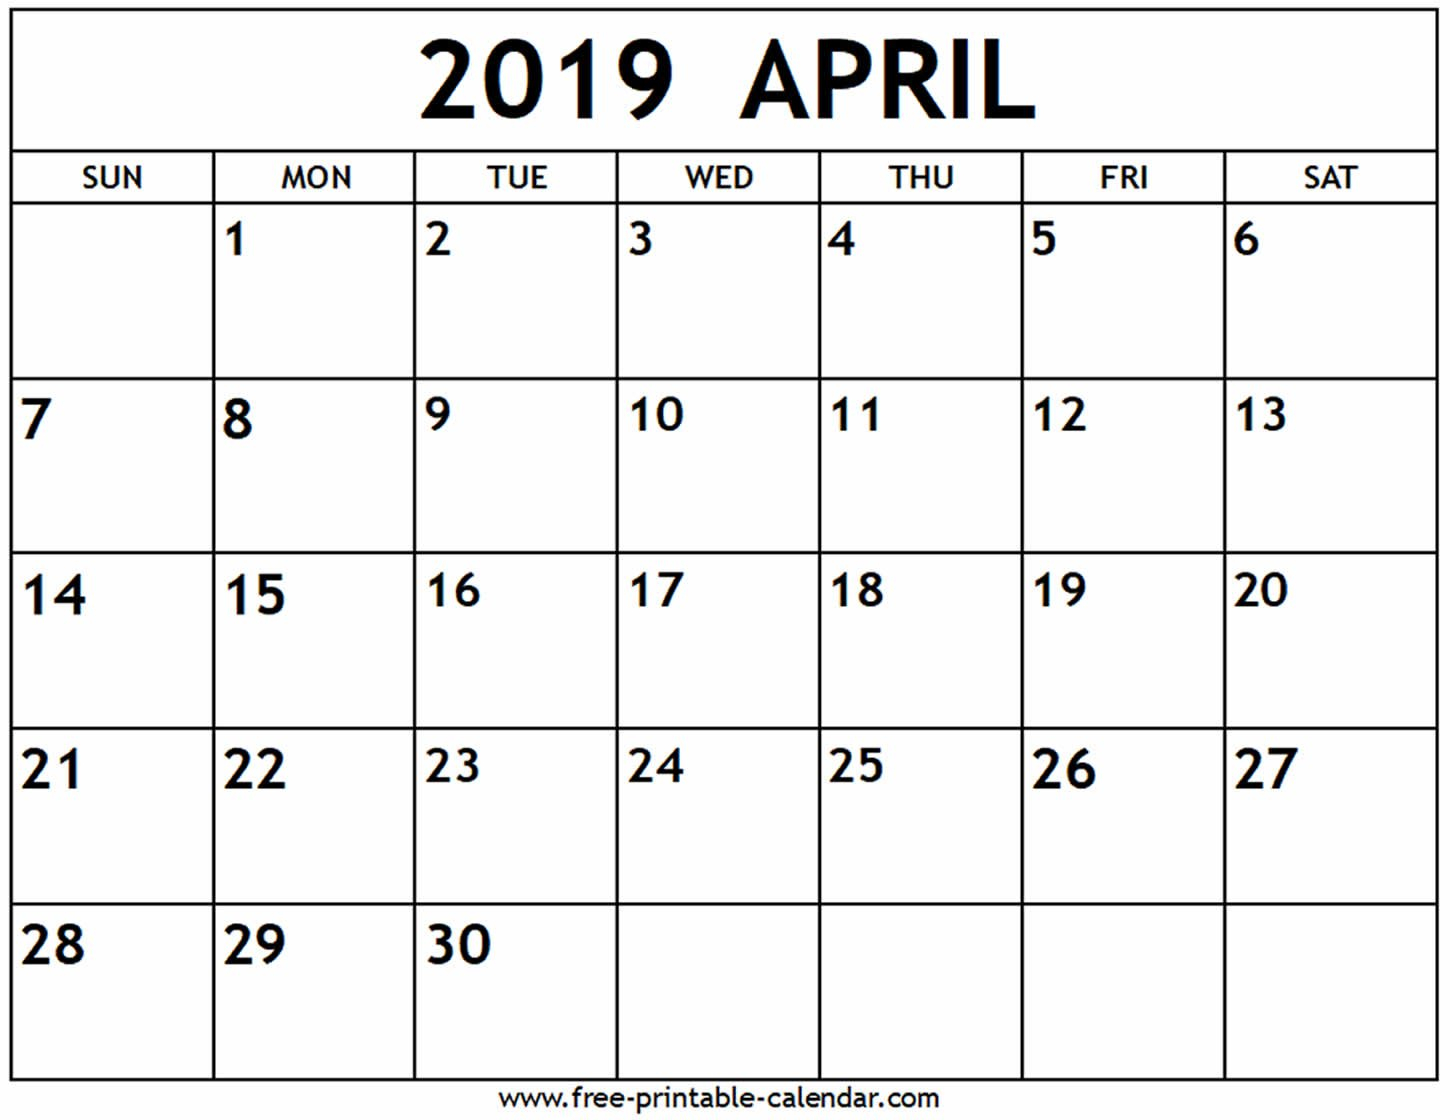 April 2019 Calendar – Free Printable Calendar A Calendar For April 2019